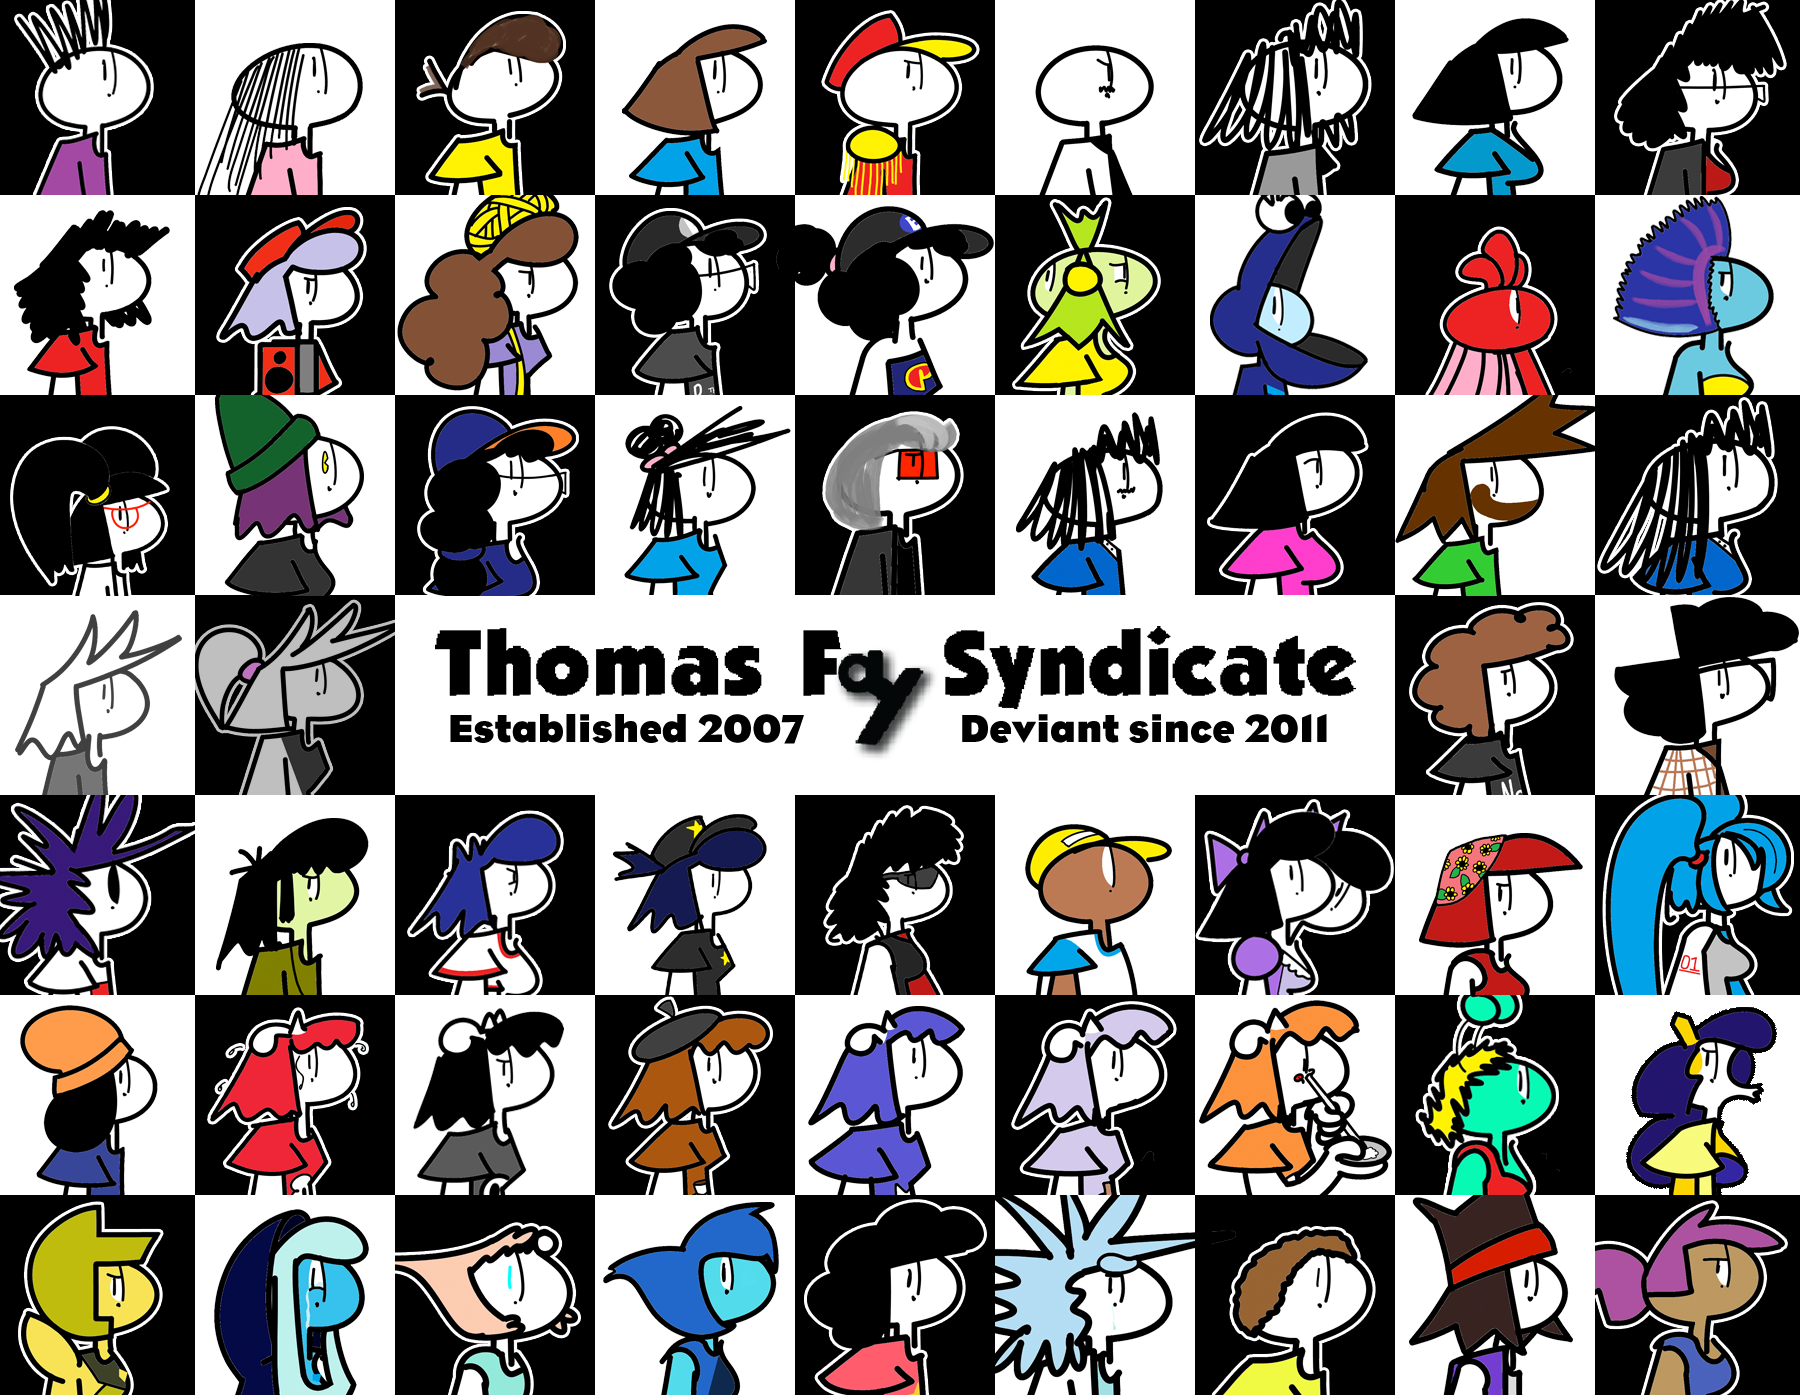 TFSyndicate's Profile Picture